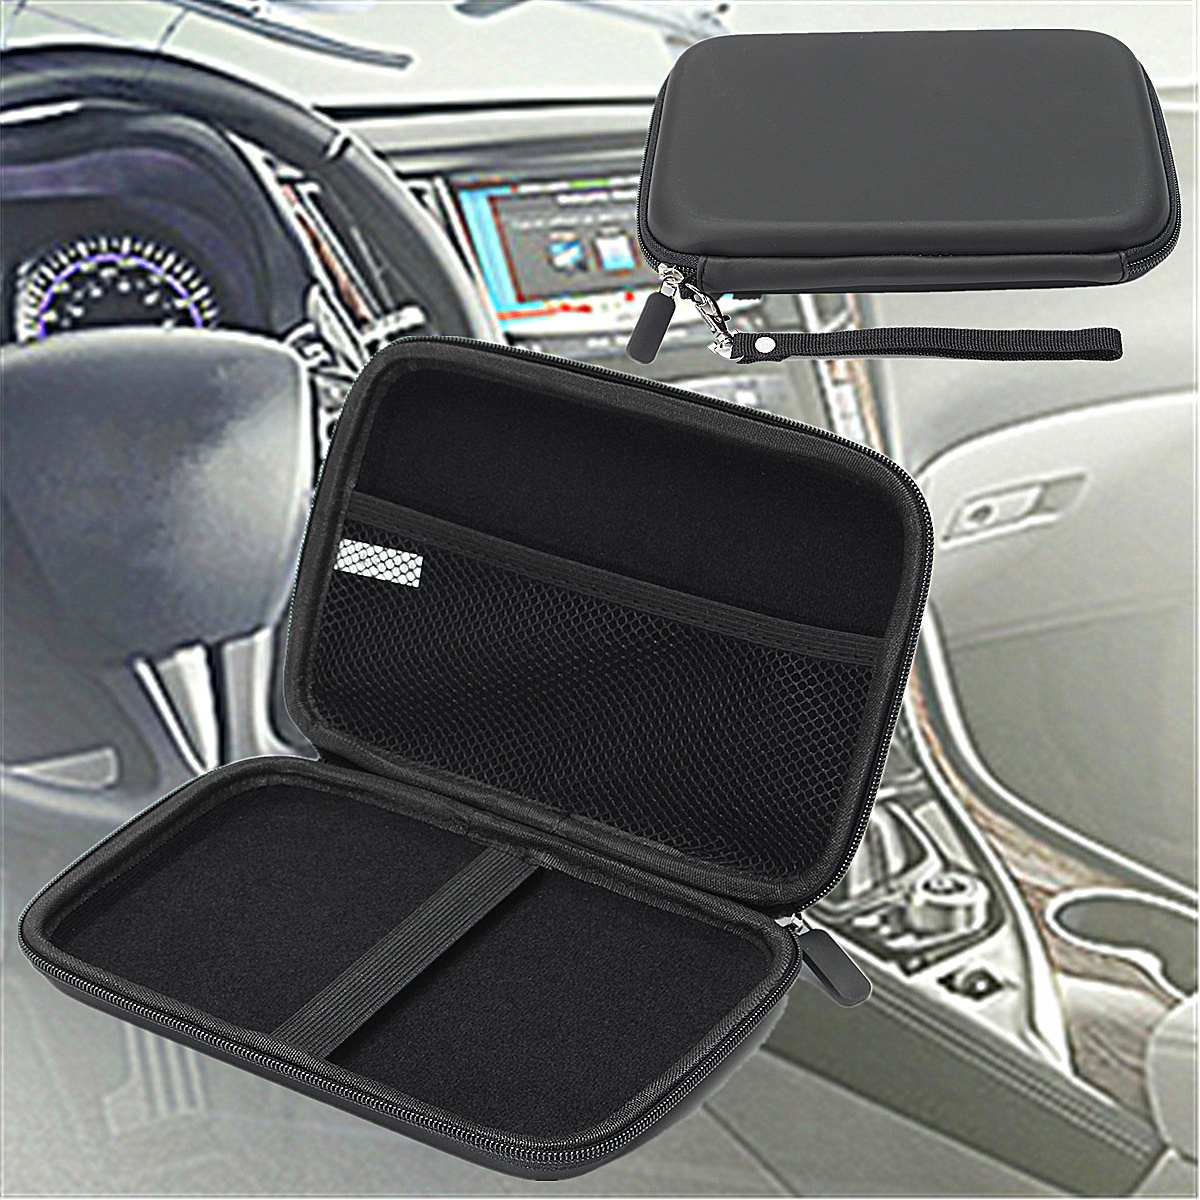 7 GPS Navigation Storage Bag Protection PU EVA Hard Shell Box Carry Case Cover Outdoor Travel Portable SAT NAV Holder Protector7 GPS Navigation Storage Bag Protection PU EVA Hard Shell Box Carry Case Cover Outdoor Travel Portable SAT NAV Holder Protector